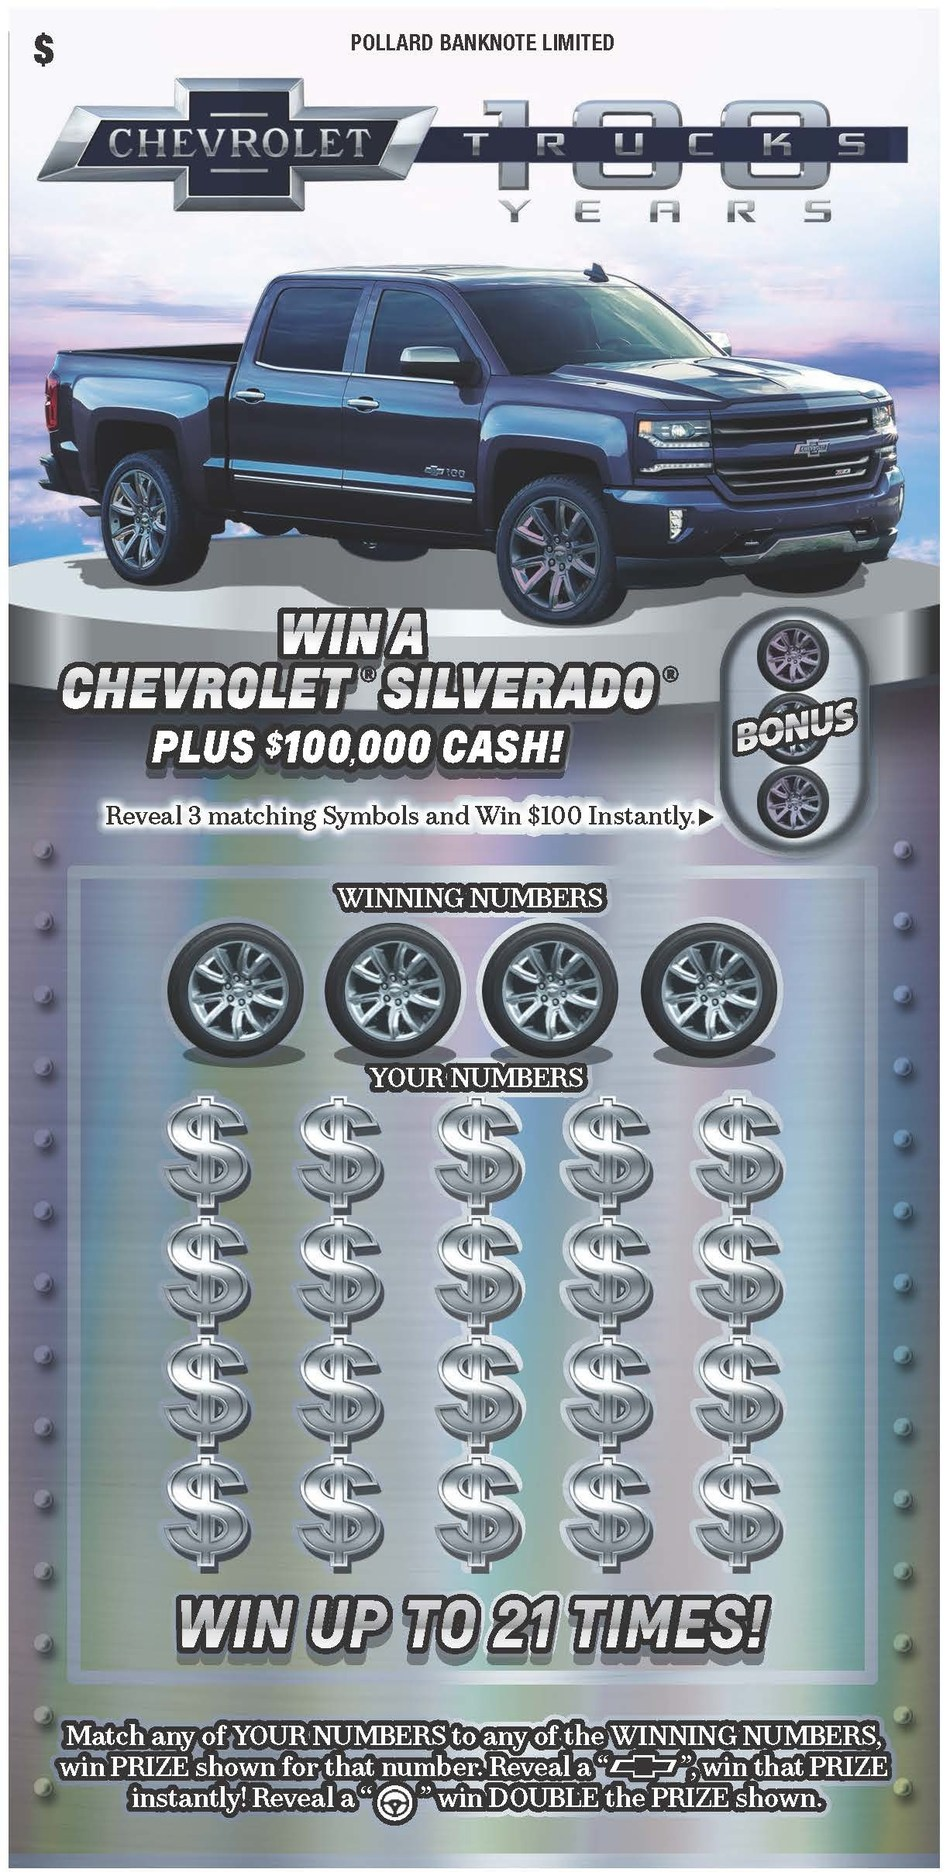 Chevrolet Silverado offered by Pollard Banknote (CNW Group/Pollard Banknote Limited)